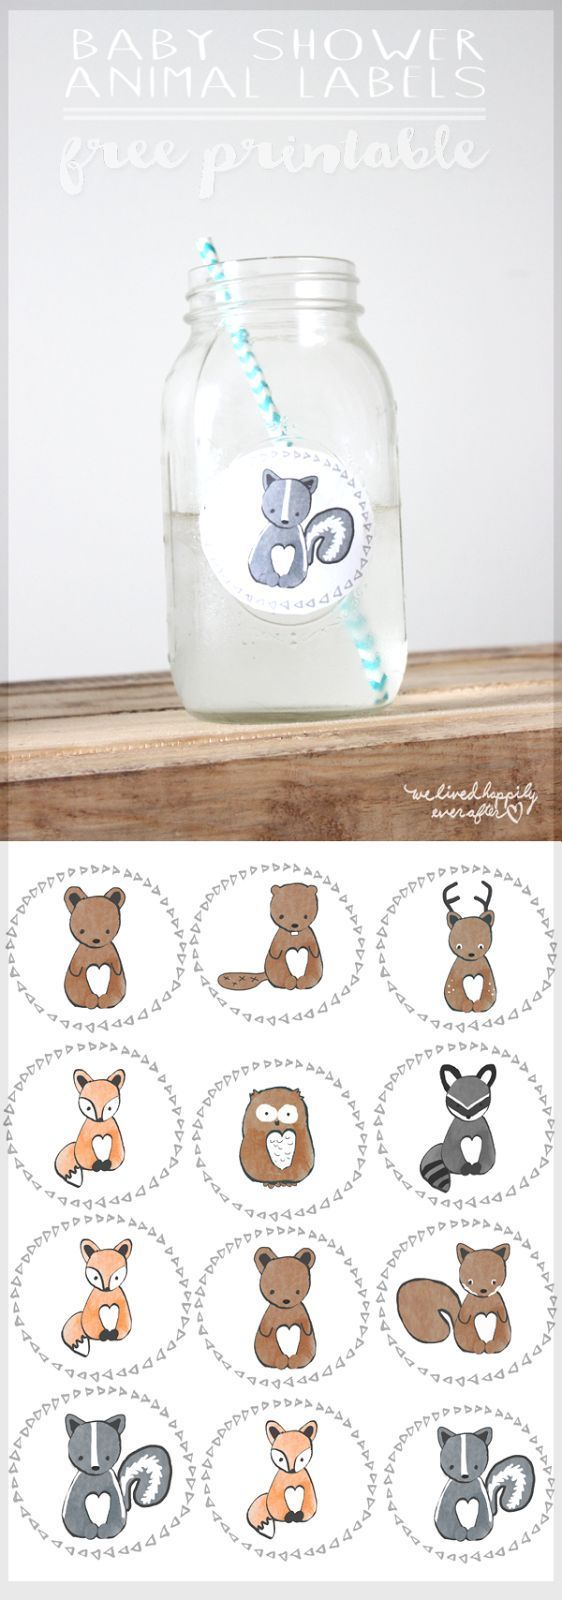 Free Forest Animal Mason Jar Baby Shower Label Printables (We Lived Happily Ever After)